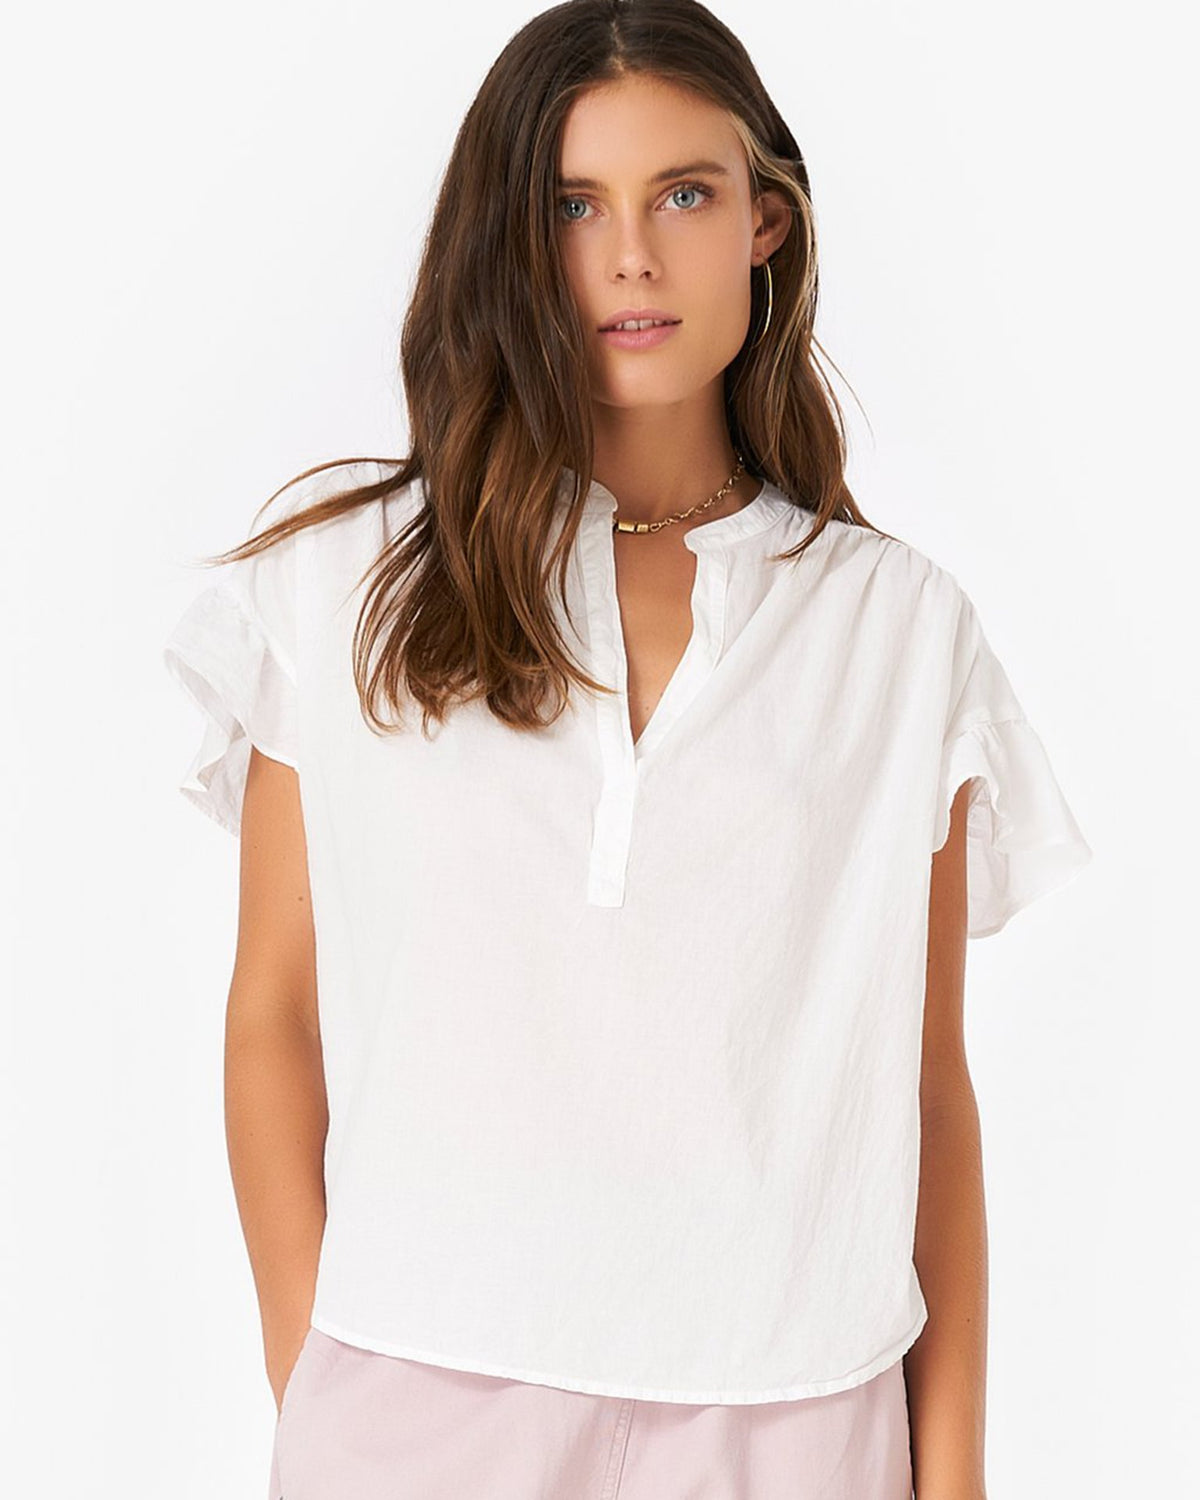 XiRENA Clothing Hanna Top in White